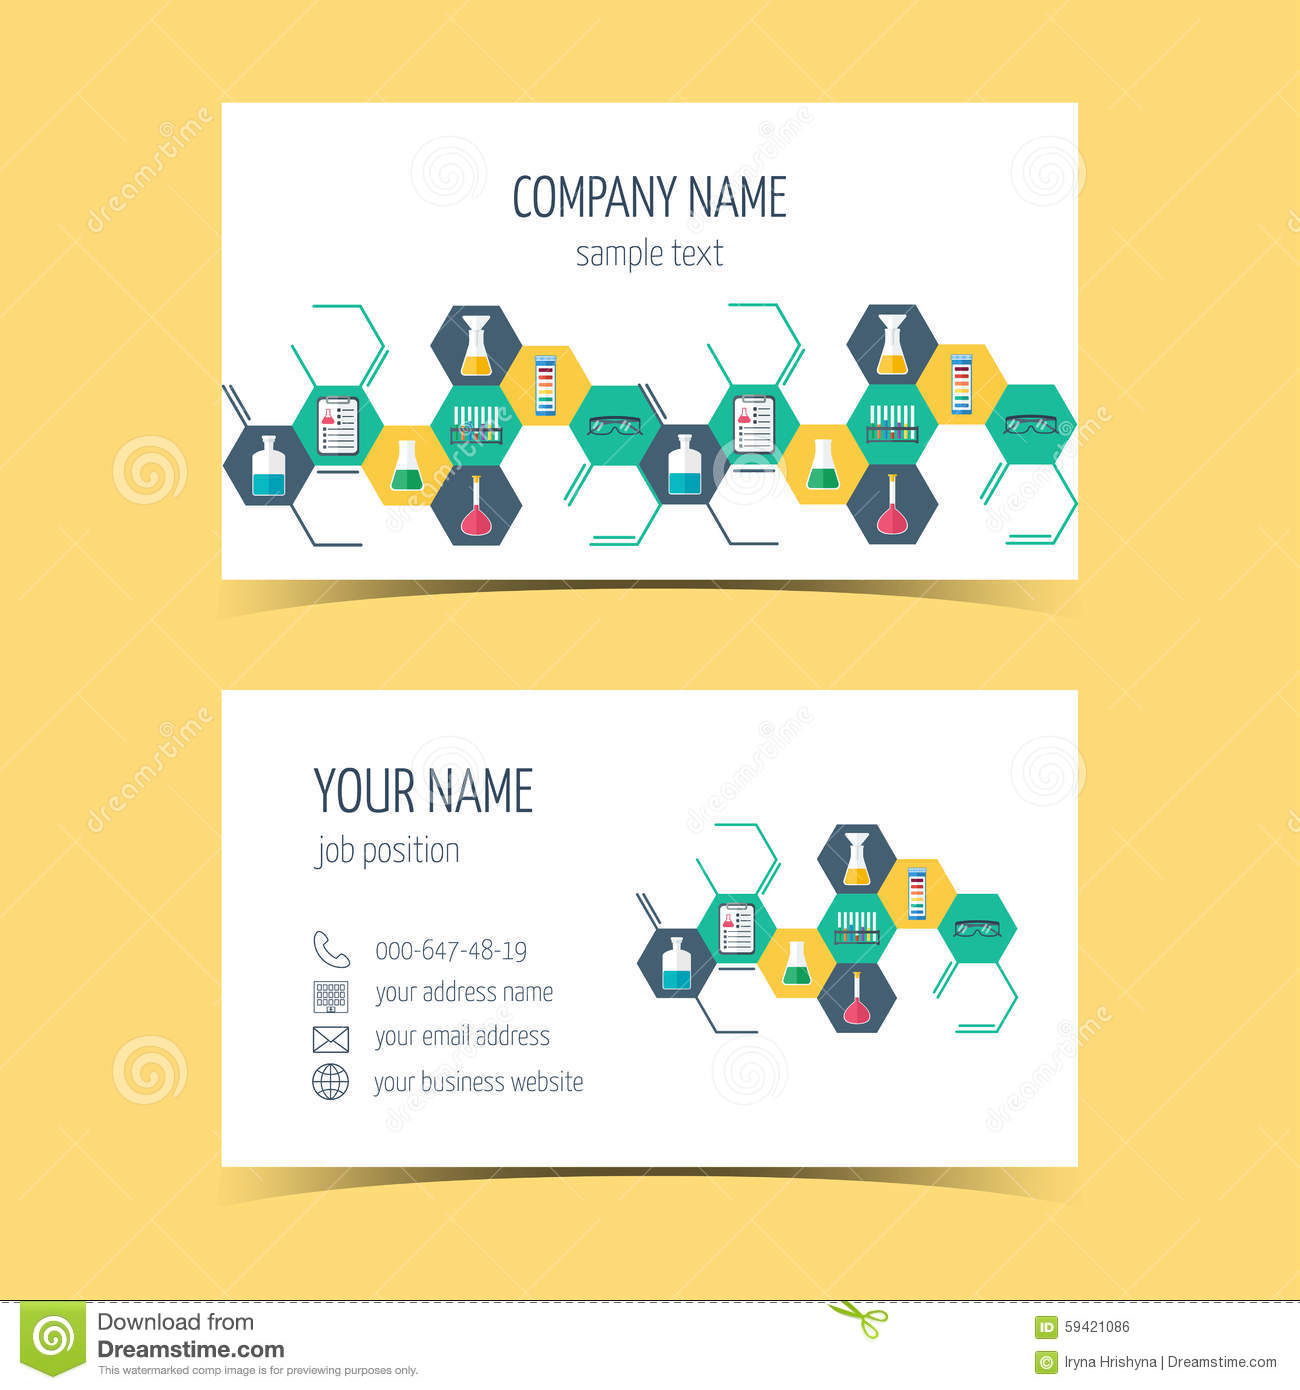 Business cards for chemical and scientific companies promotional business cards for chemical and scientific companies promotional products vector colourmoves